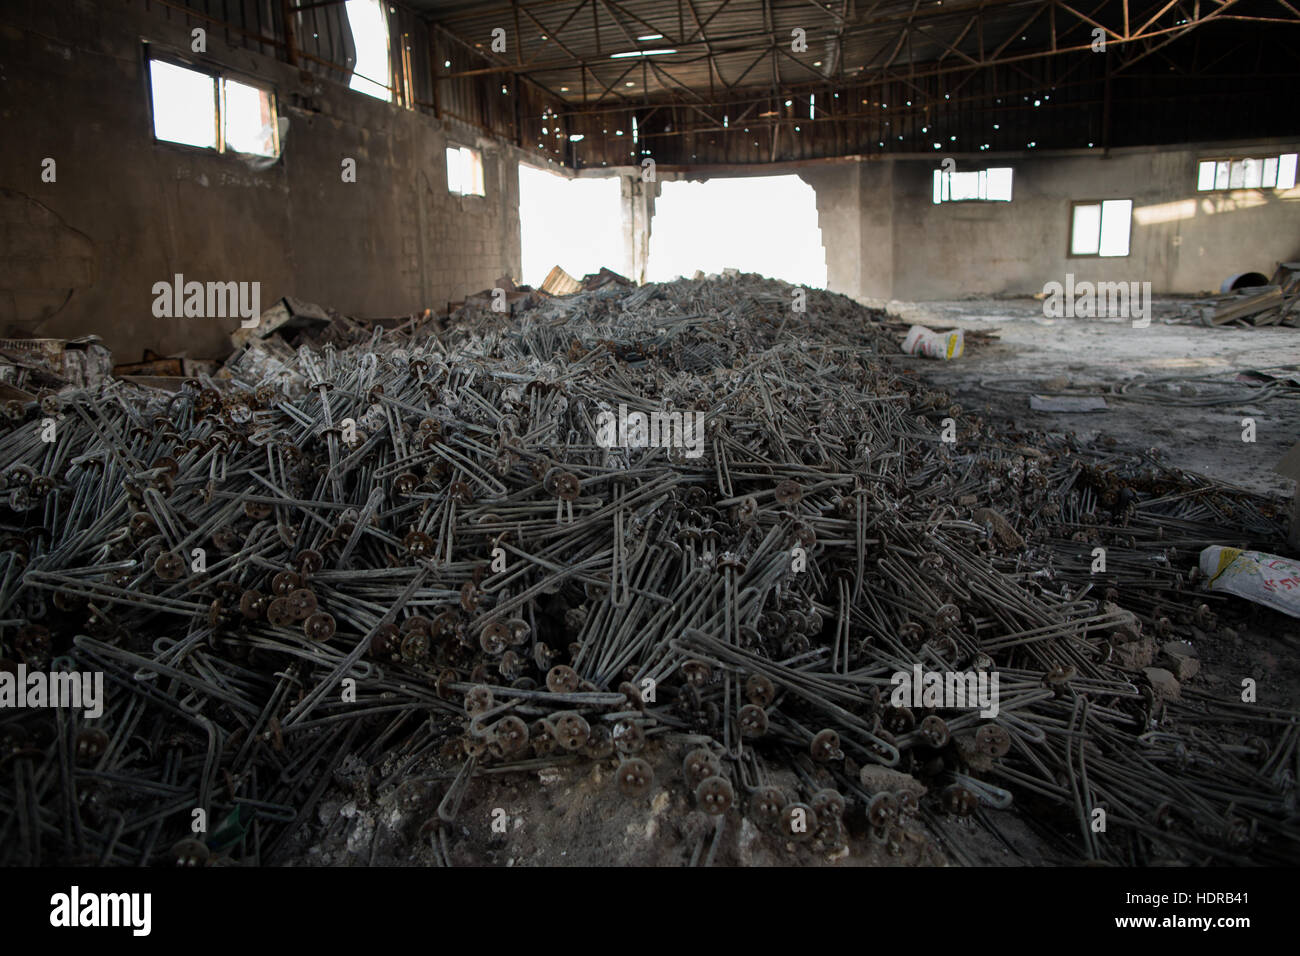 A large batch of heating filaments, the remains of boilers after a ...